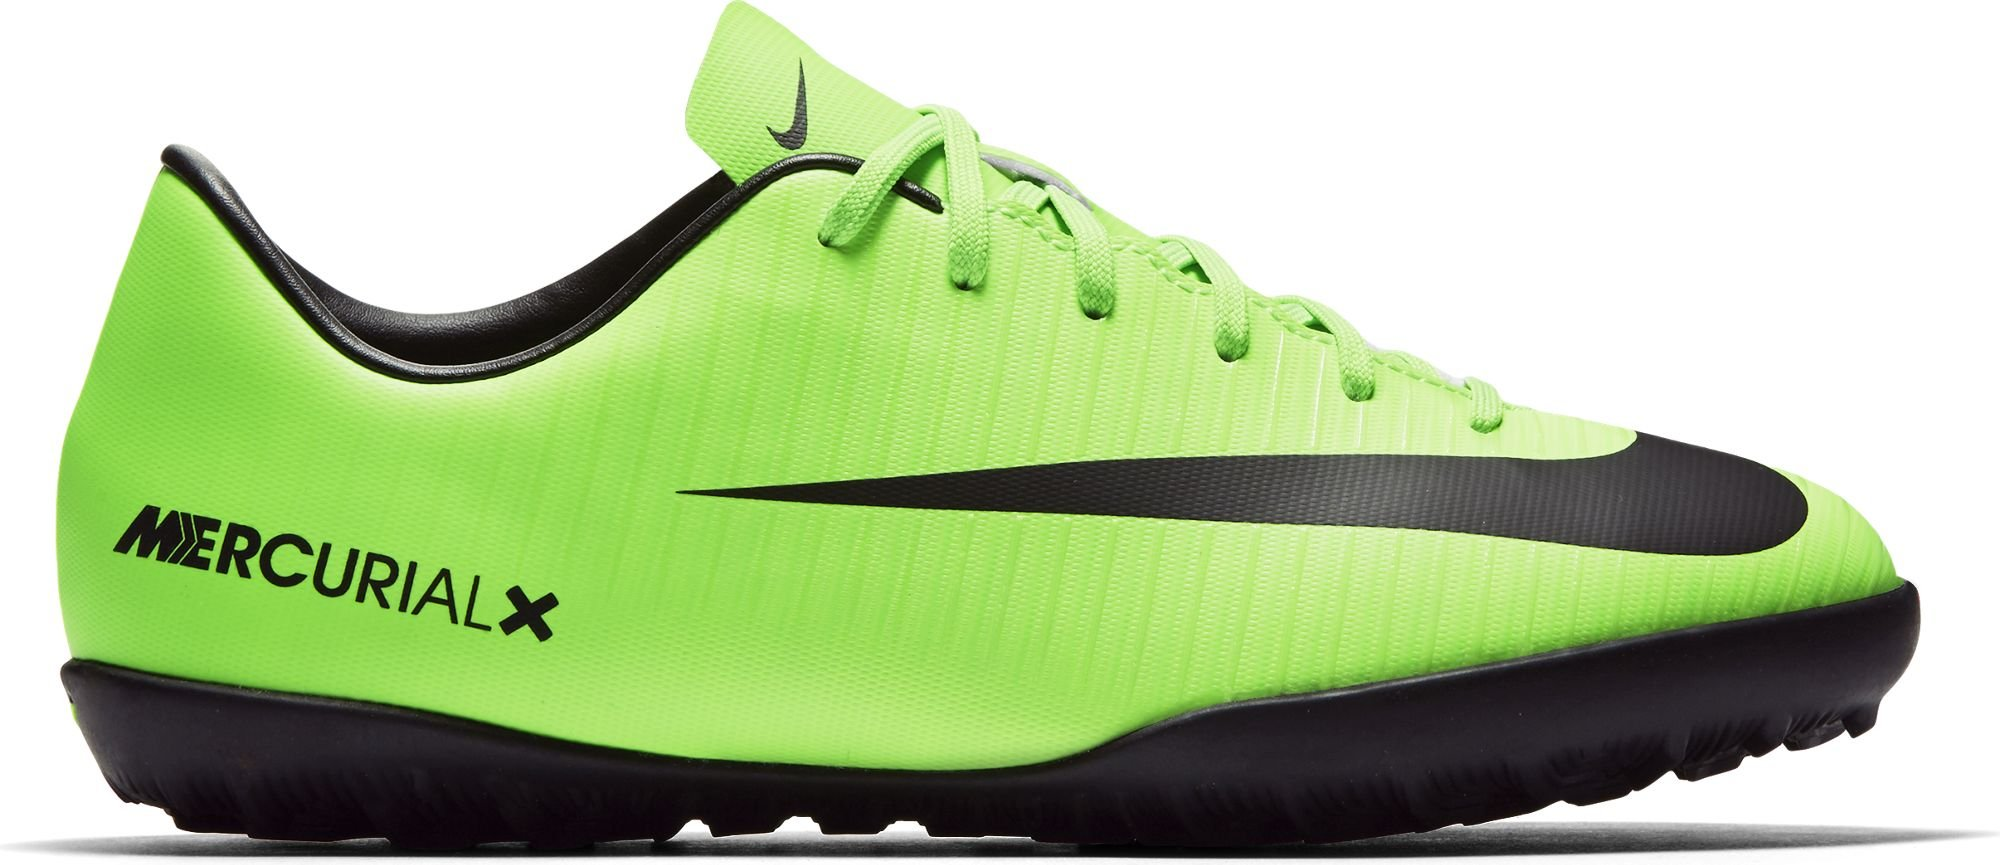 Nike Youth Soccer MercurialX Vapor XI Turf Shoes (2 Little Kid M, Electric GreenBlac/White)